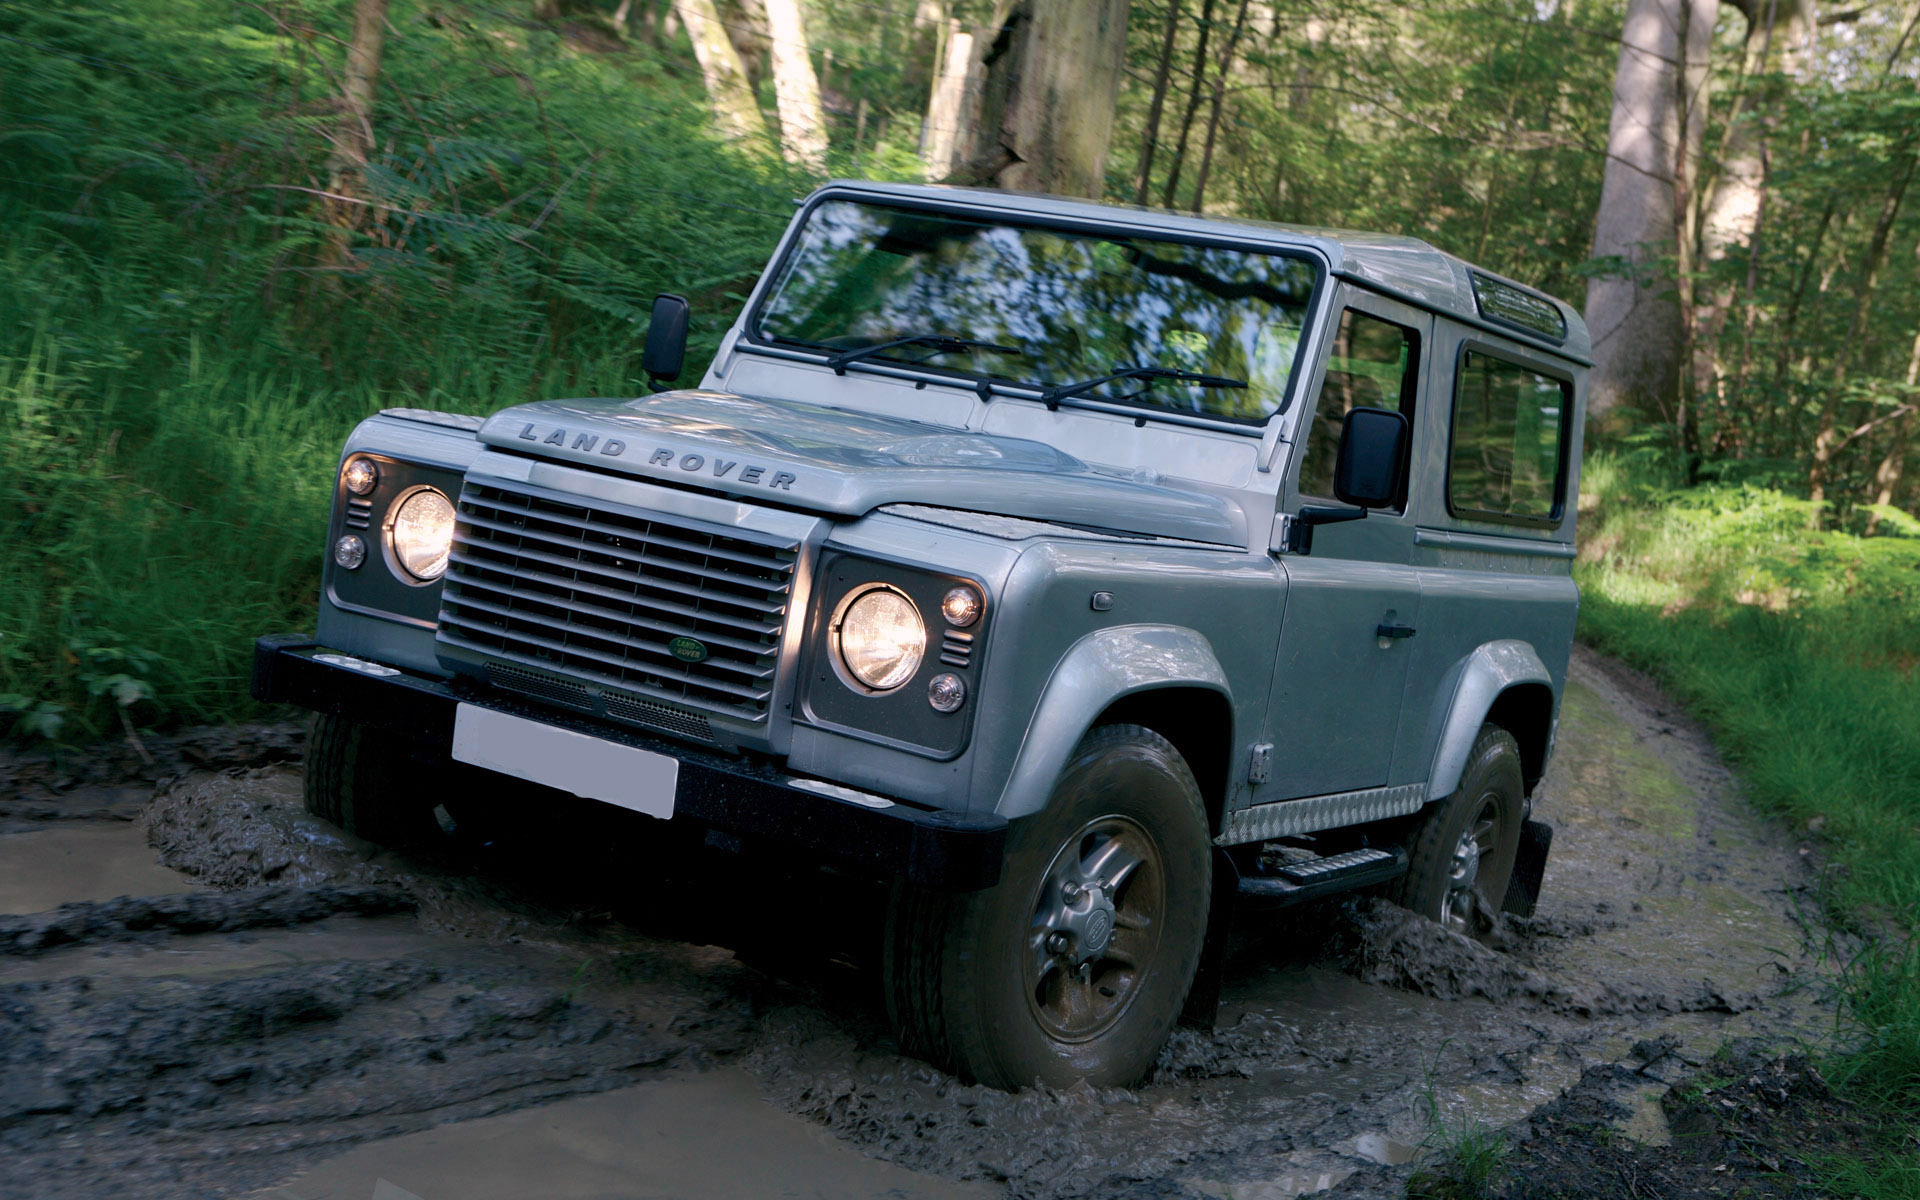 as of the Defender